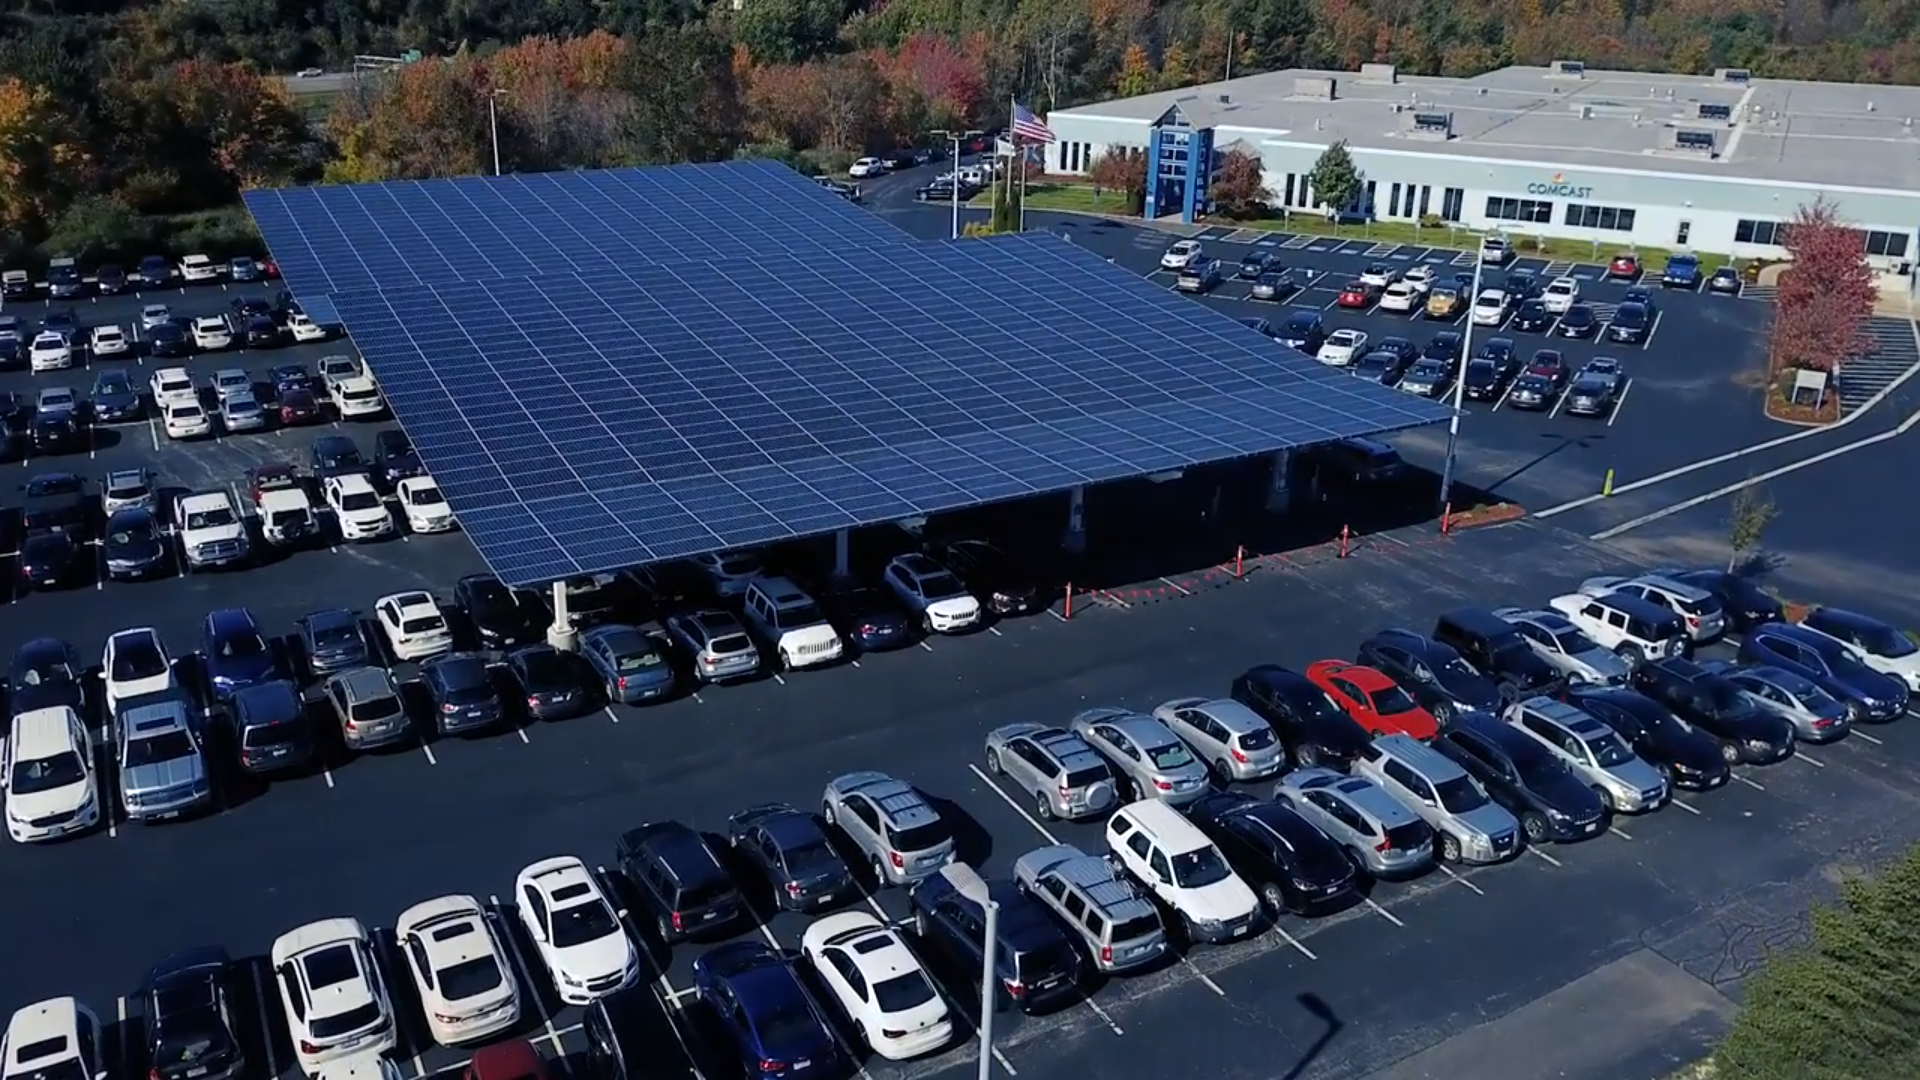 parking lot with solar panels